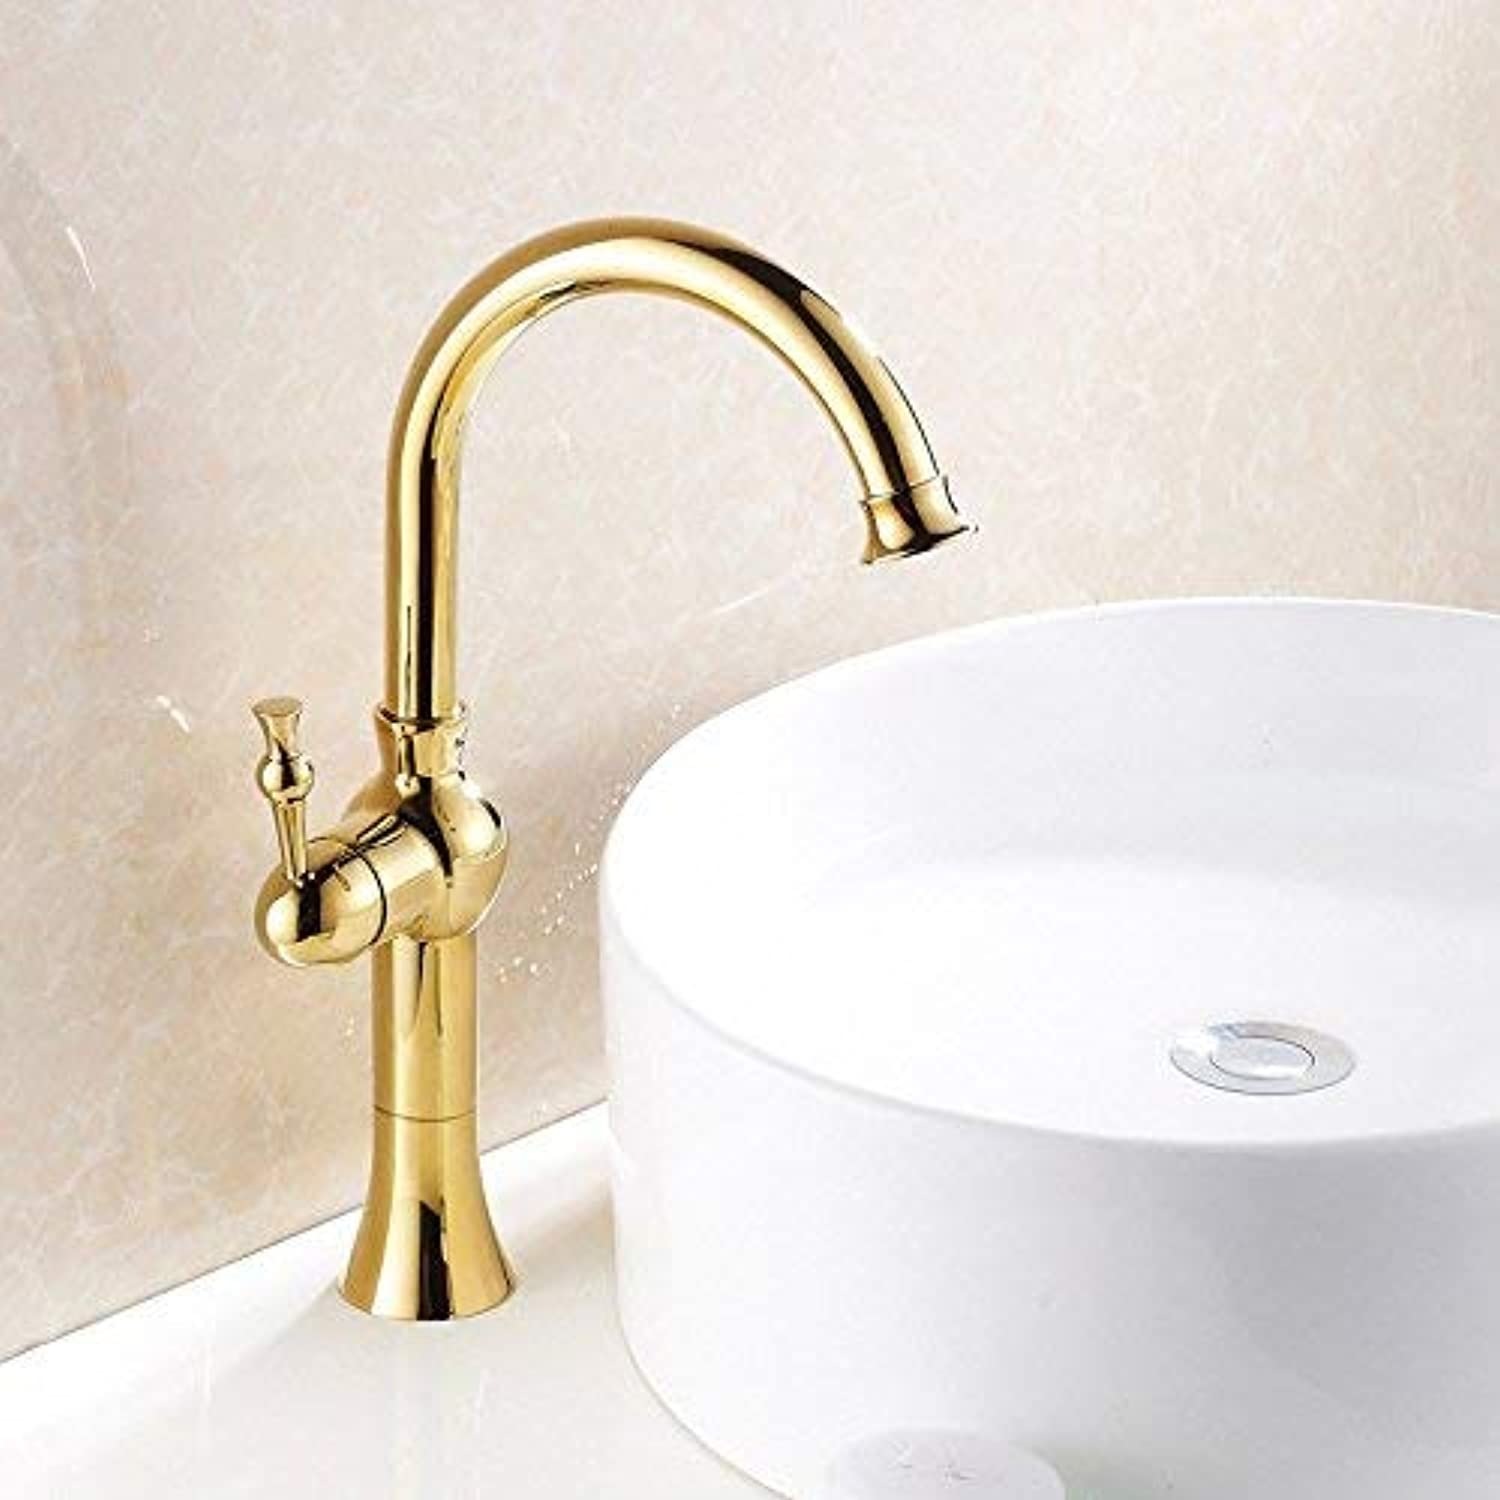 Oudan Basin hot and cold platform on the basin of European style golden faucet